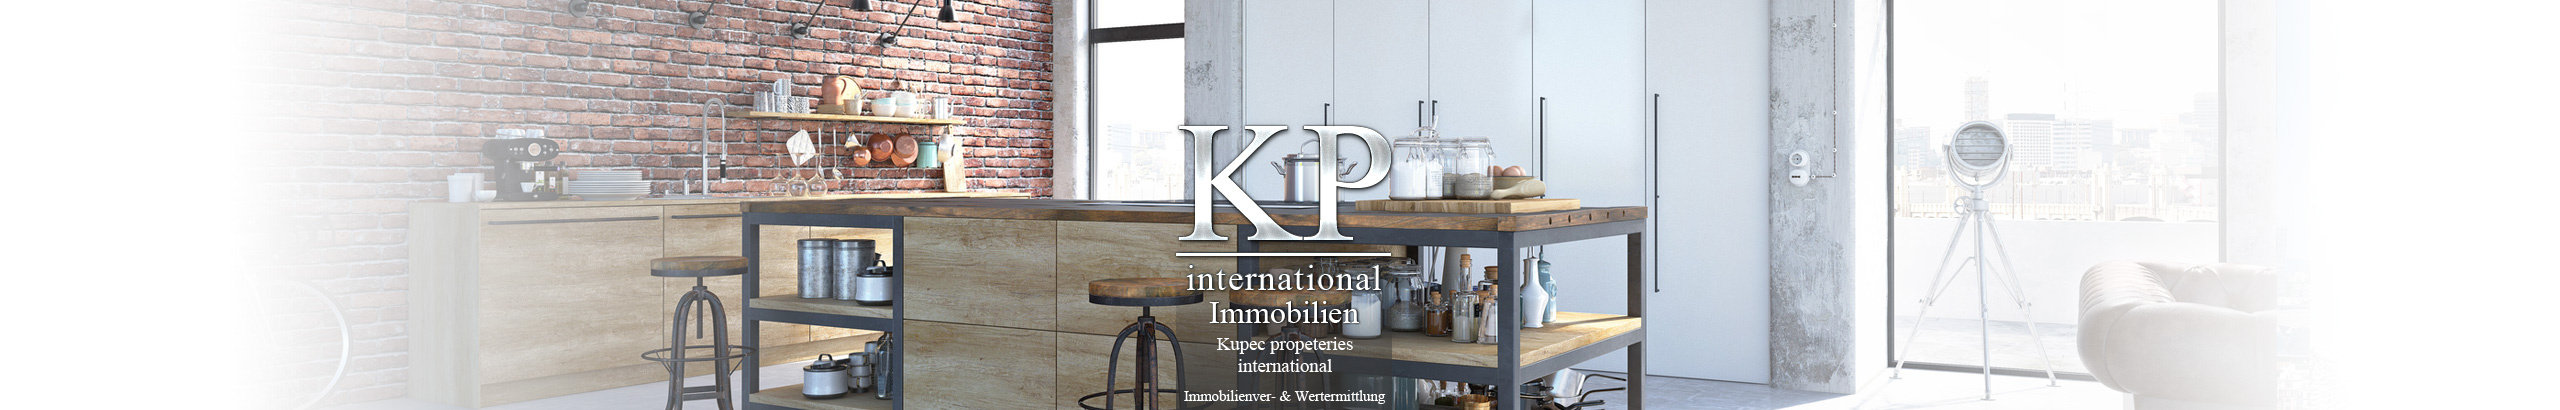 kp international immobilien hofheim. Black Bedroom Furniture Sets. Home Design Ideas